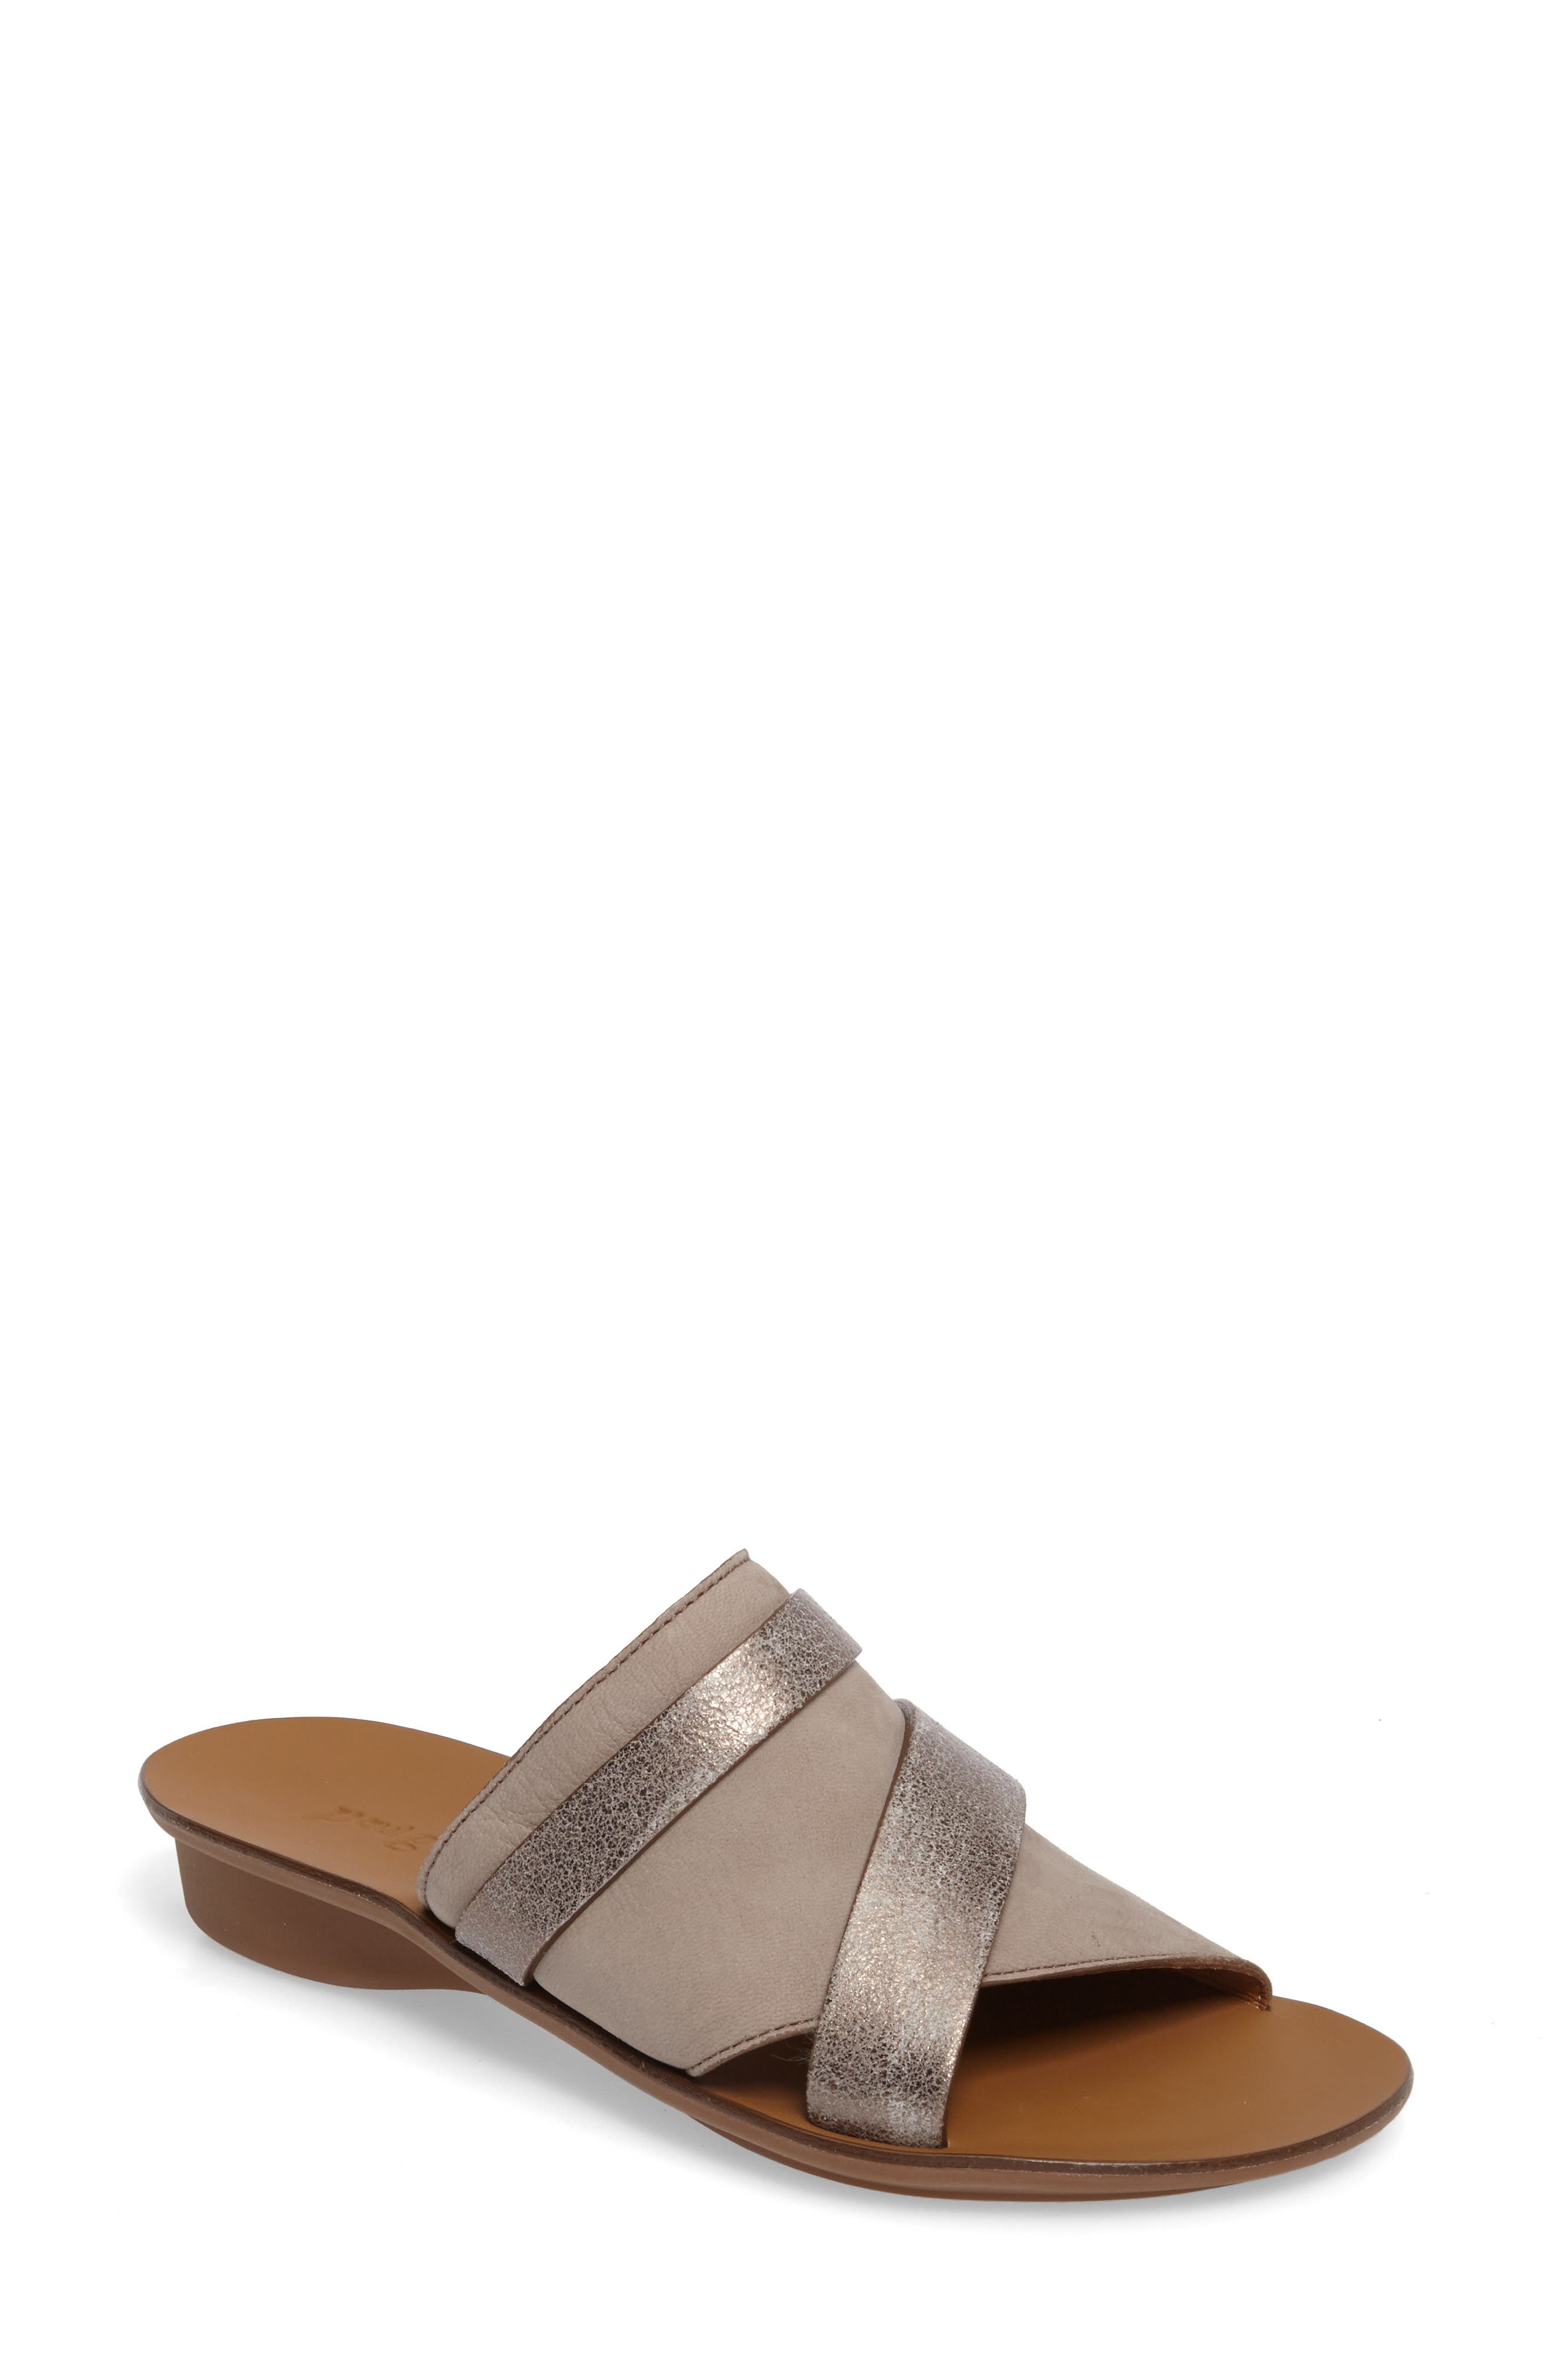 Main Image - Paul Green 'Bayside' Leather Sandal (Women)